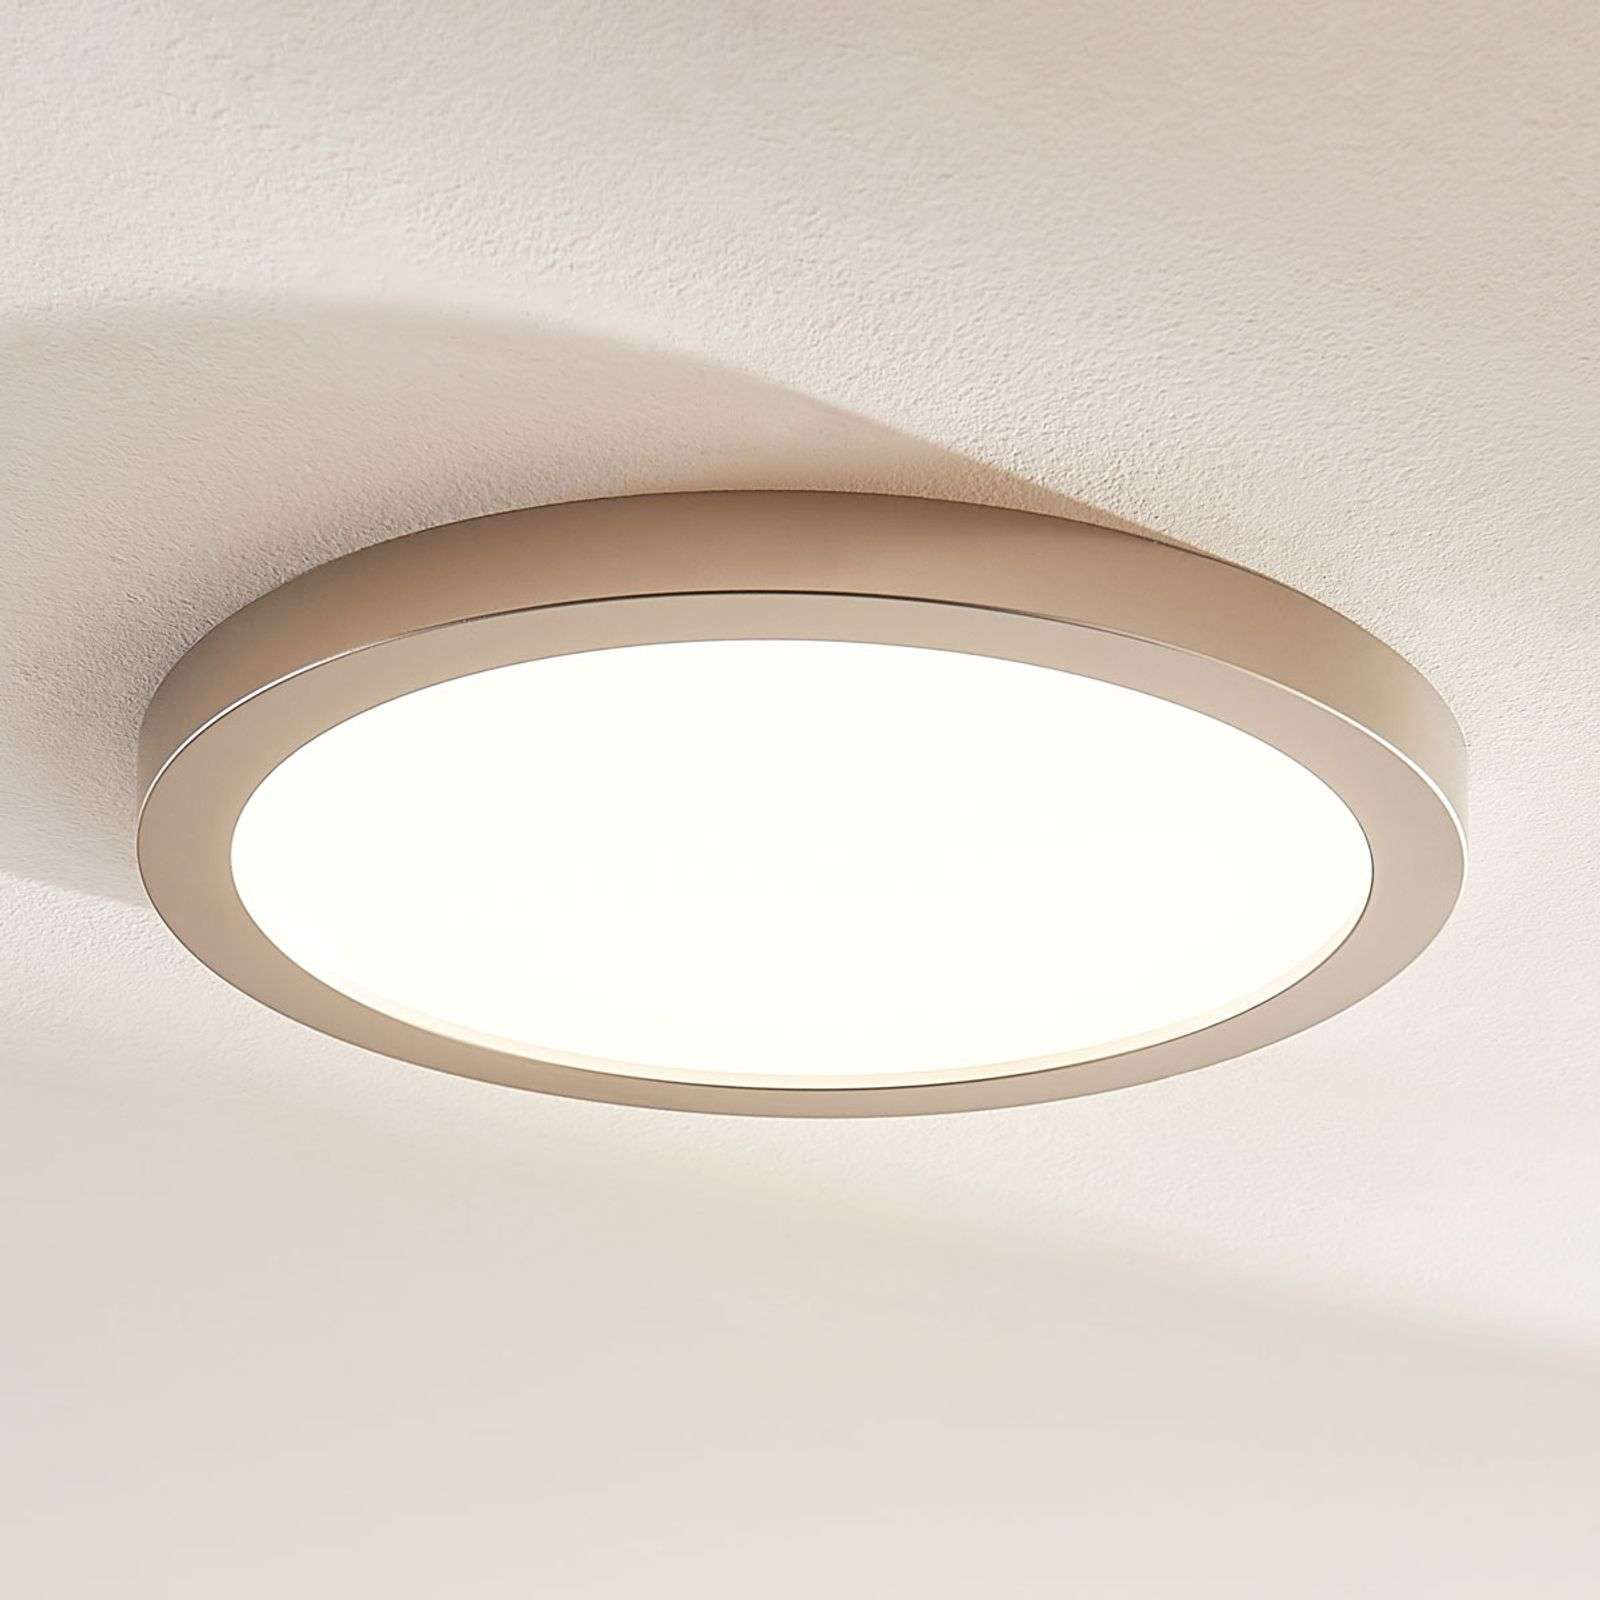 Solvie - plafoniera LED dimmerabile color nichel